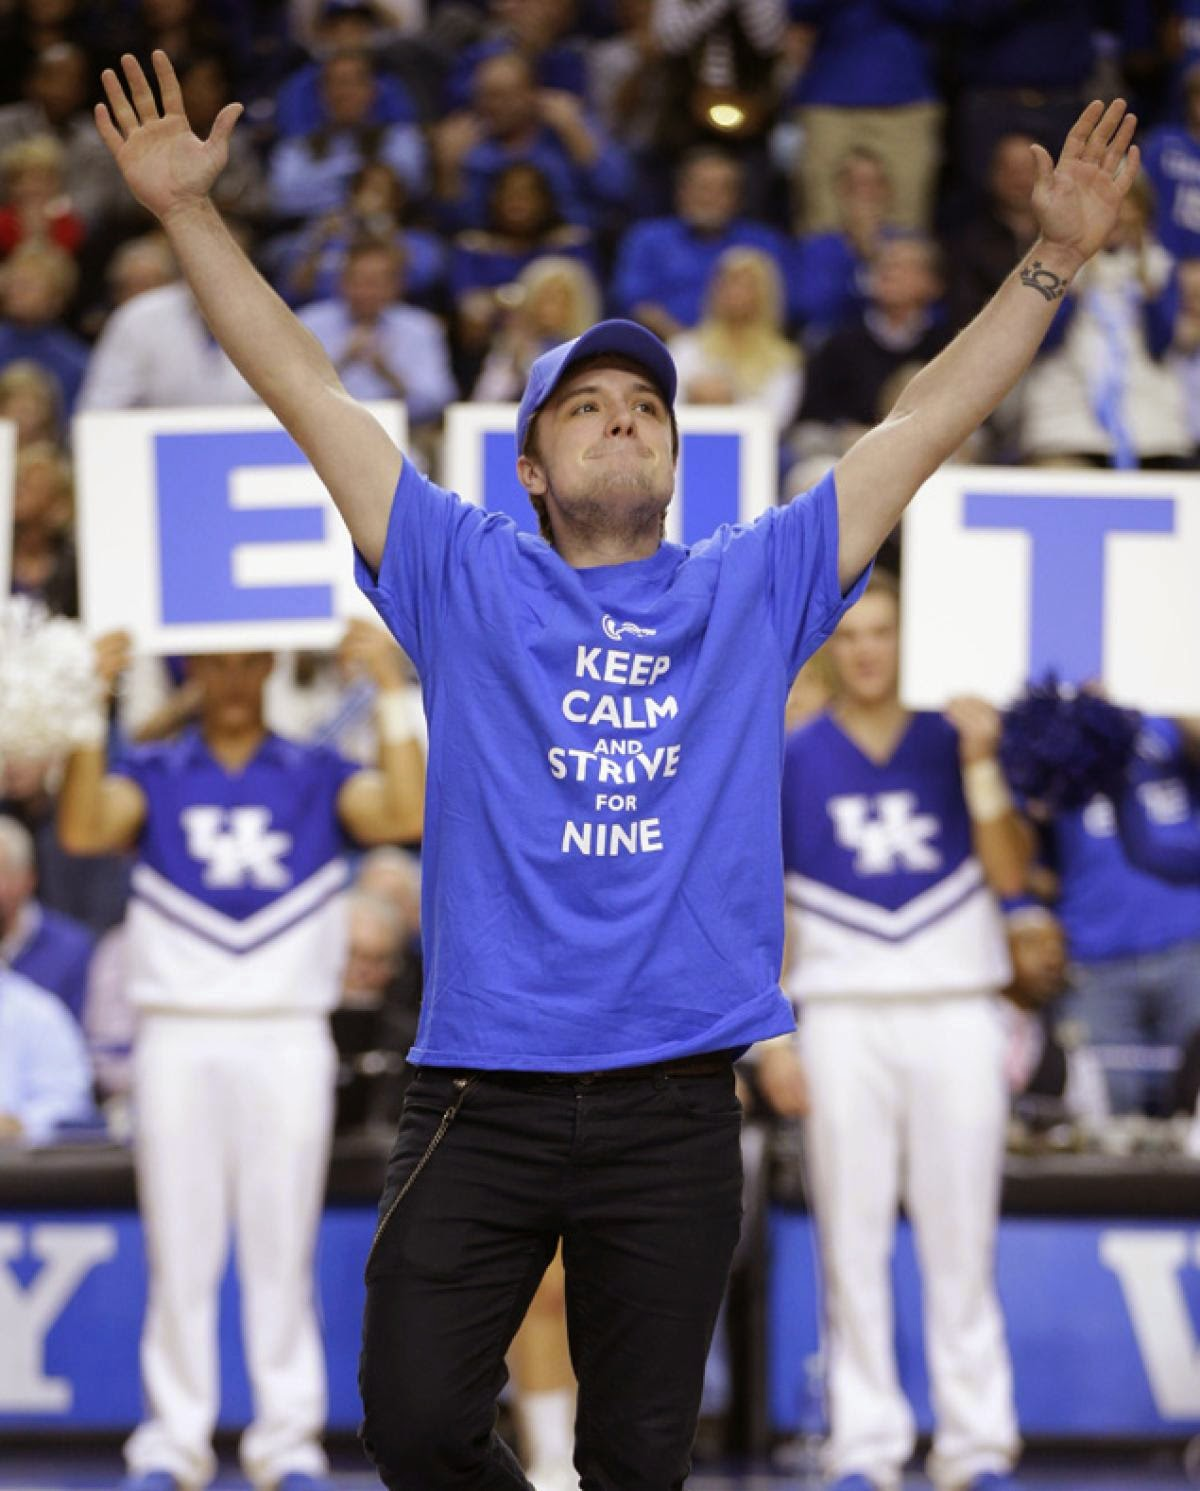 Josh Hutcherson at a Kentucky Wildcats Basketball Game